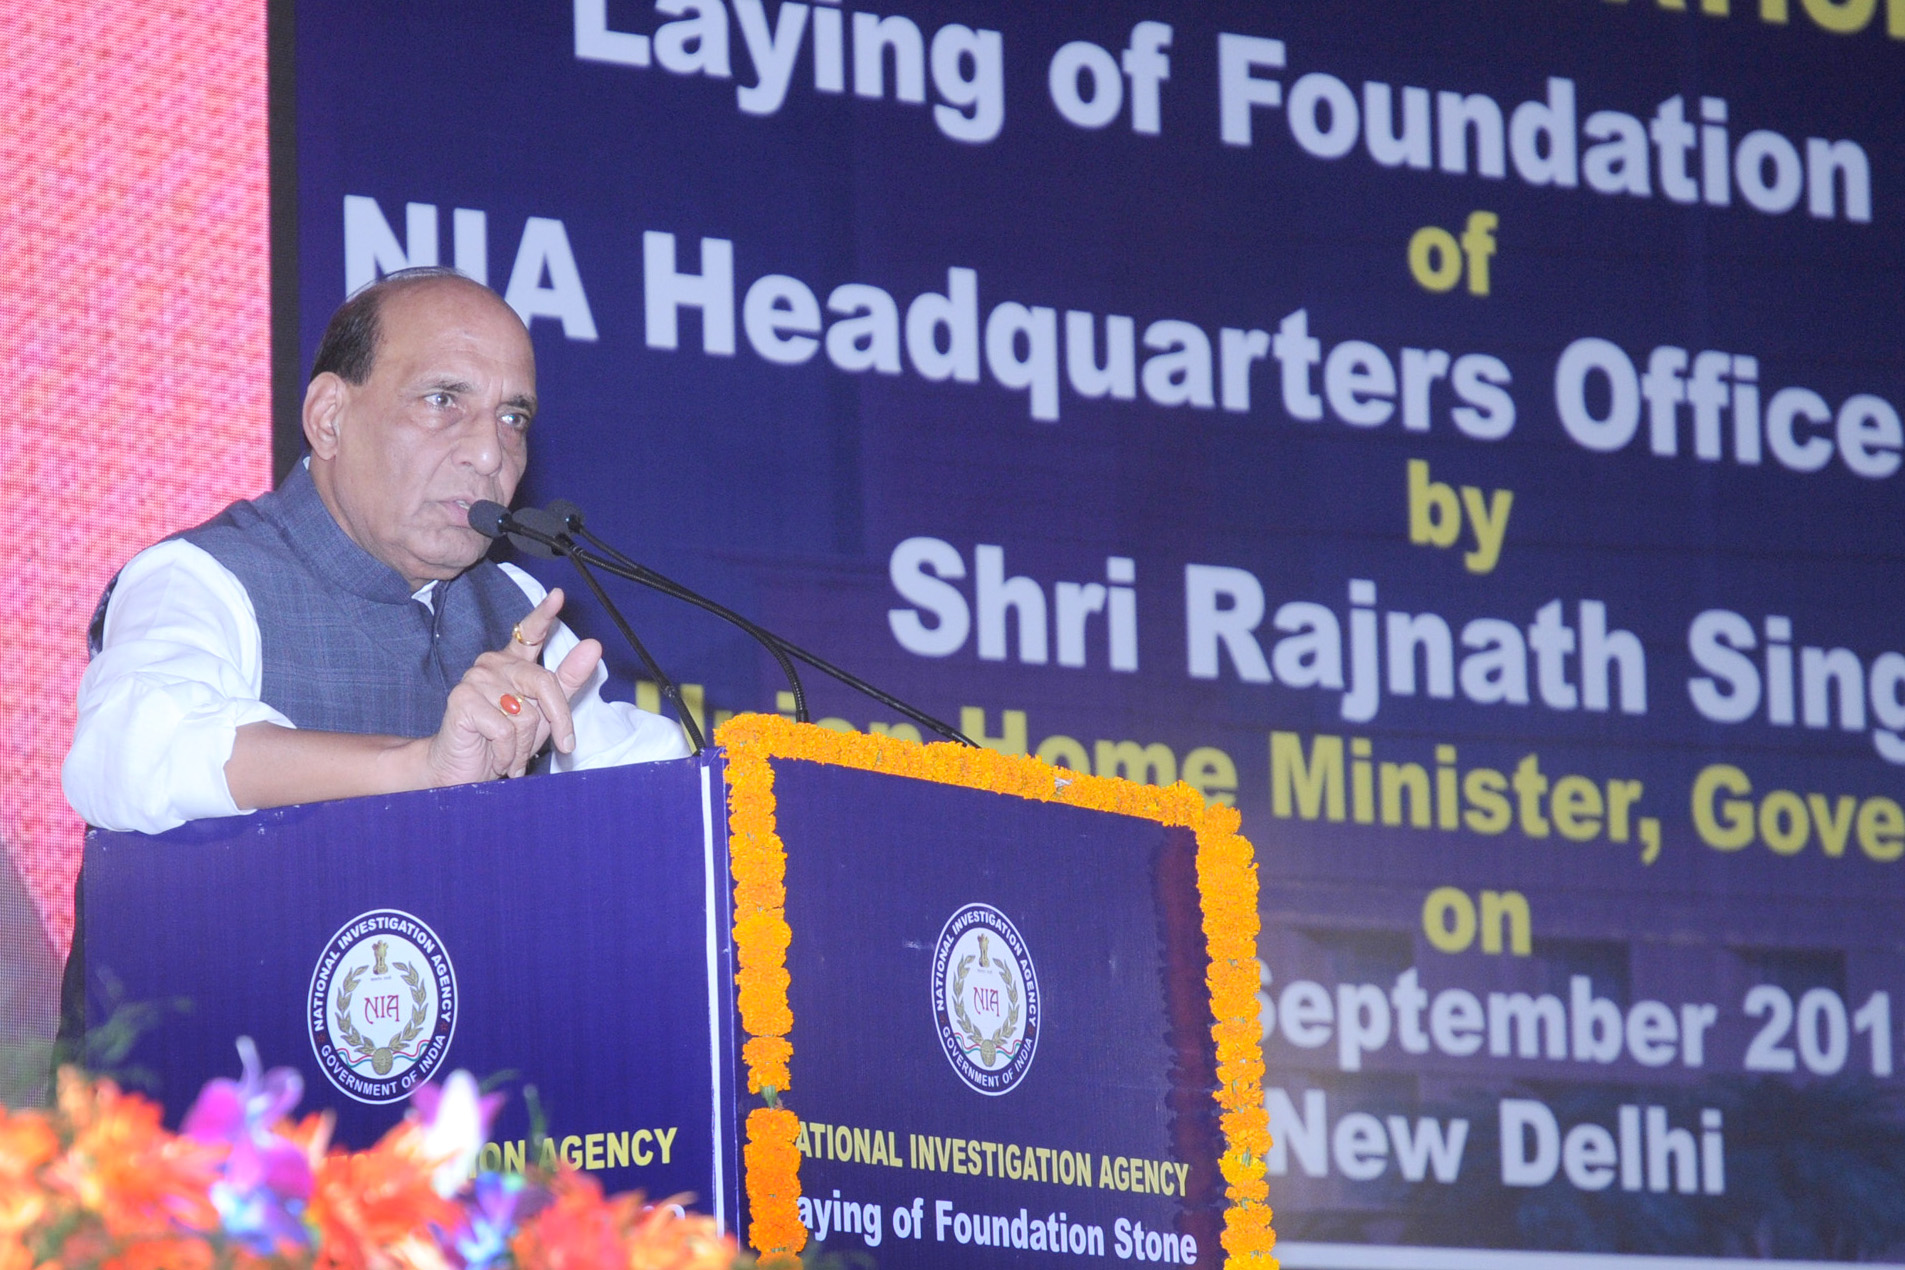 The Union Home Minister, Shri Rajnath Singh addressing at the laying foundation stone ceremony of the National Investigation Agency, Head Quarters Complex, in New Delhi on September 10, 2015.